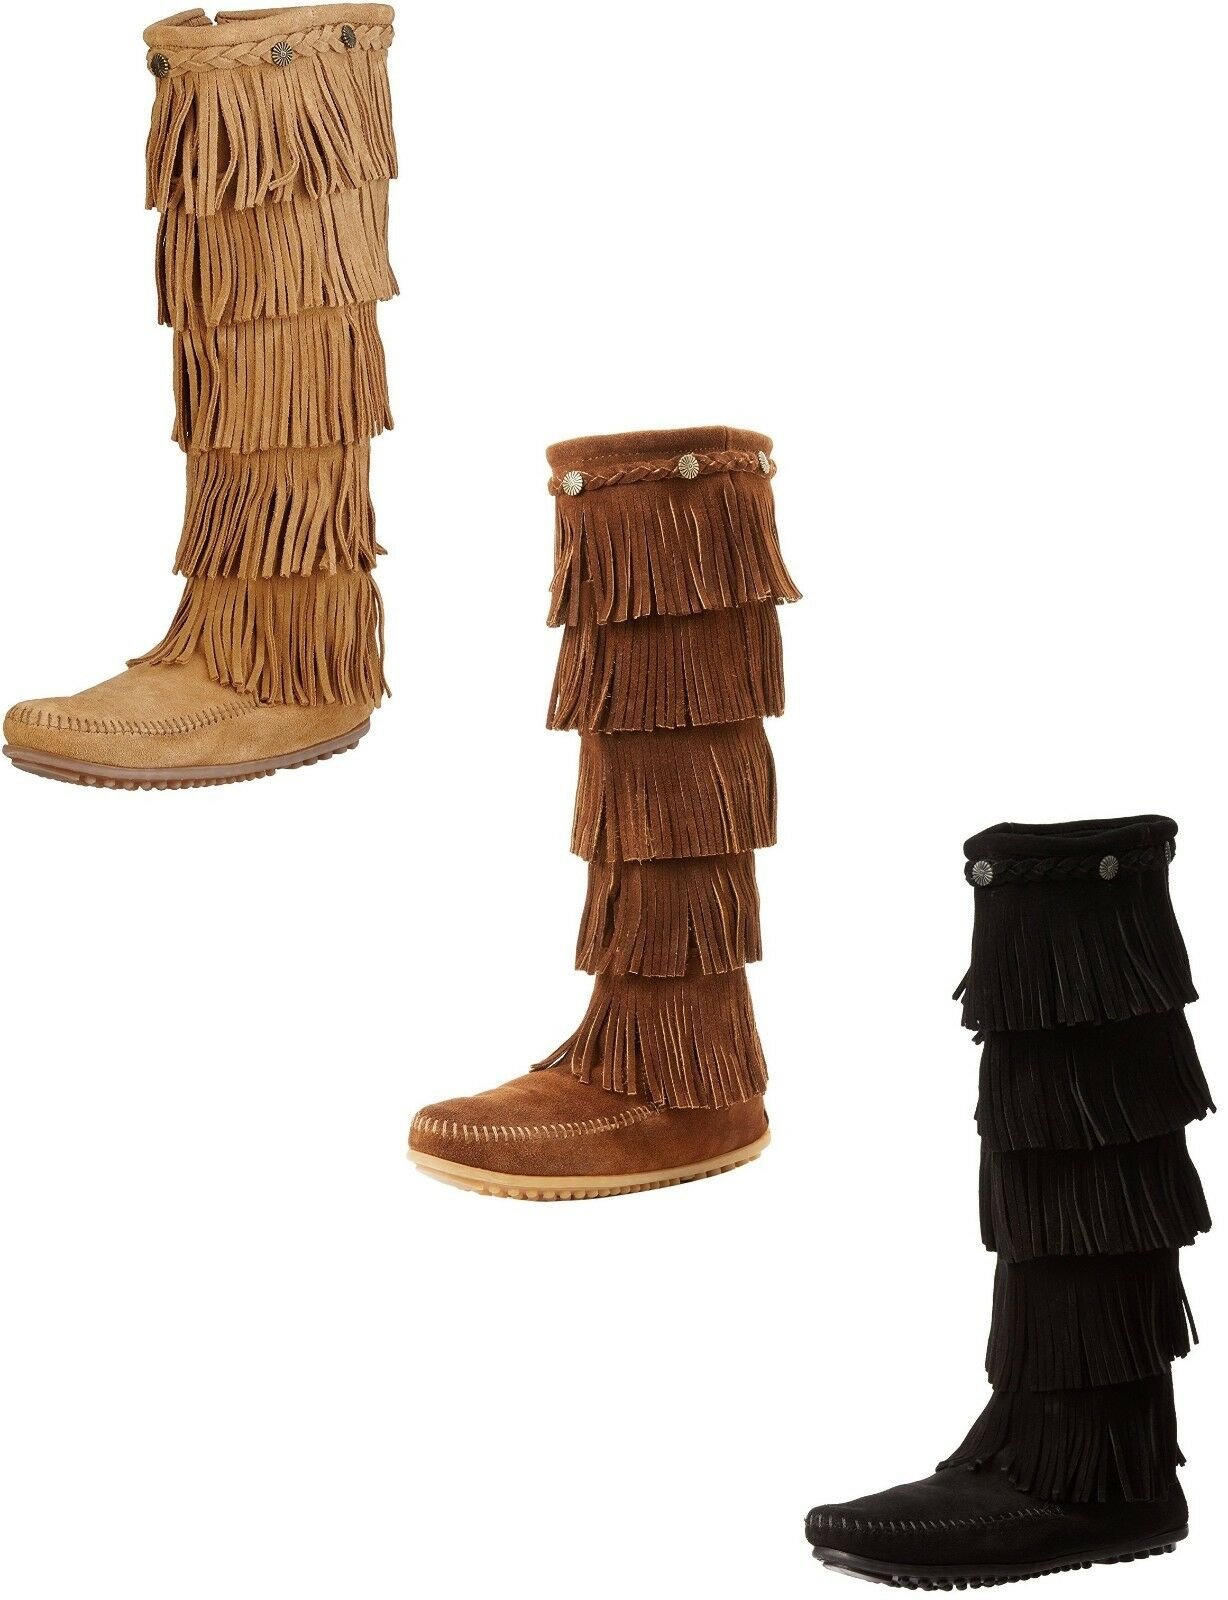 Mr/Ms Minnetonka Women's 5-Layer Fringe Boot Aesthetic appearance for King of quantity Known for appearance its excellent quality 236d36